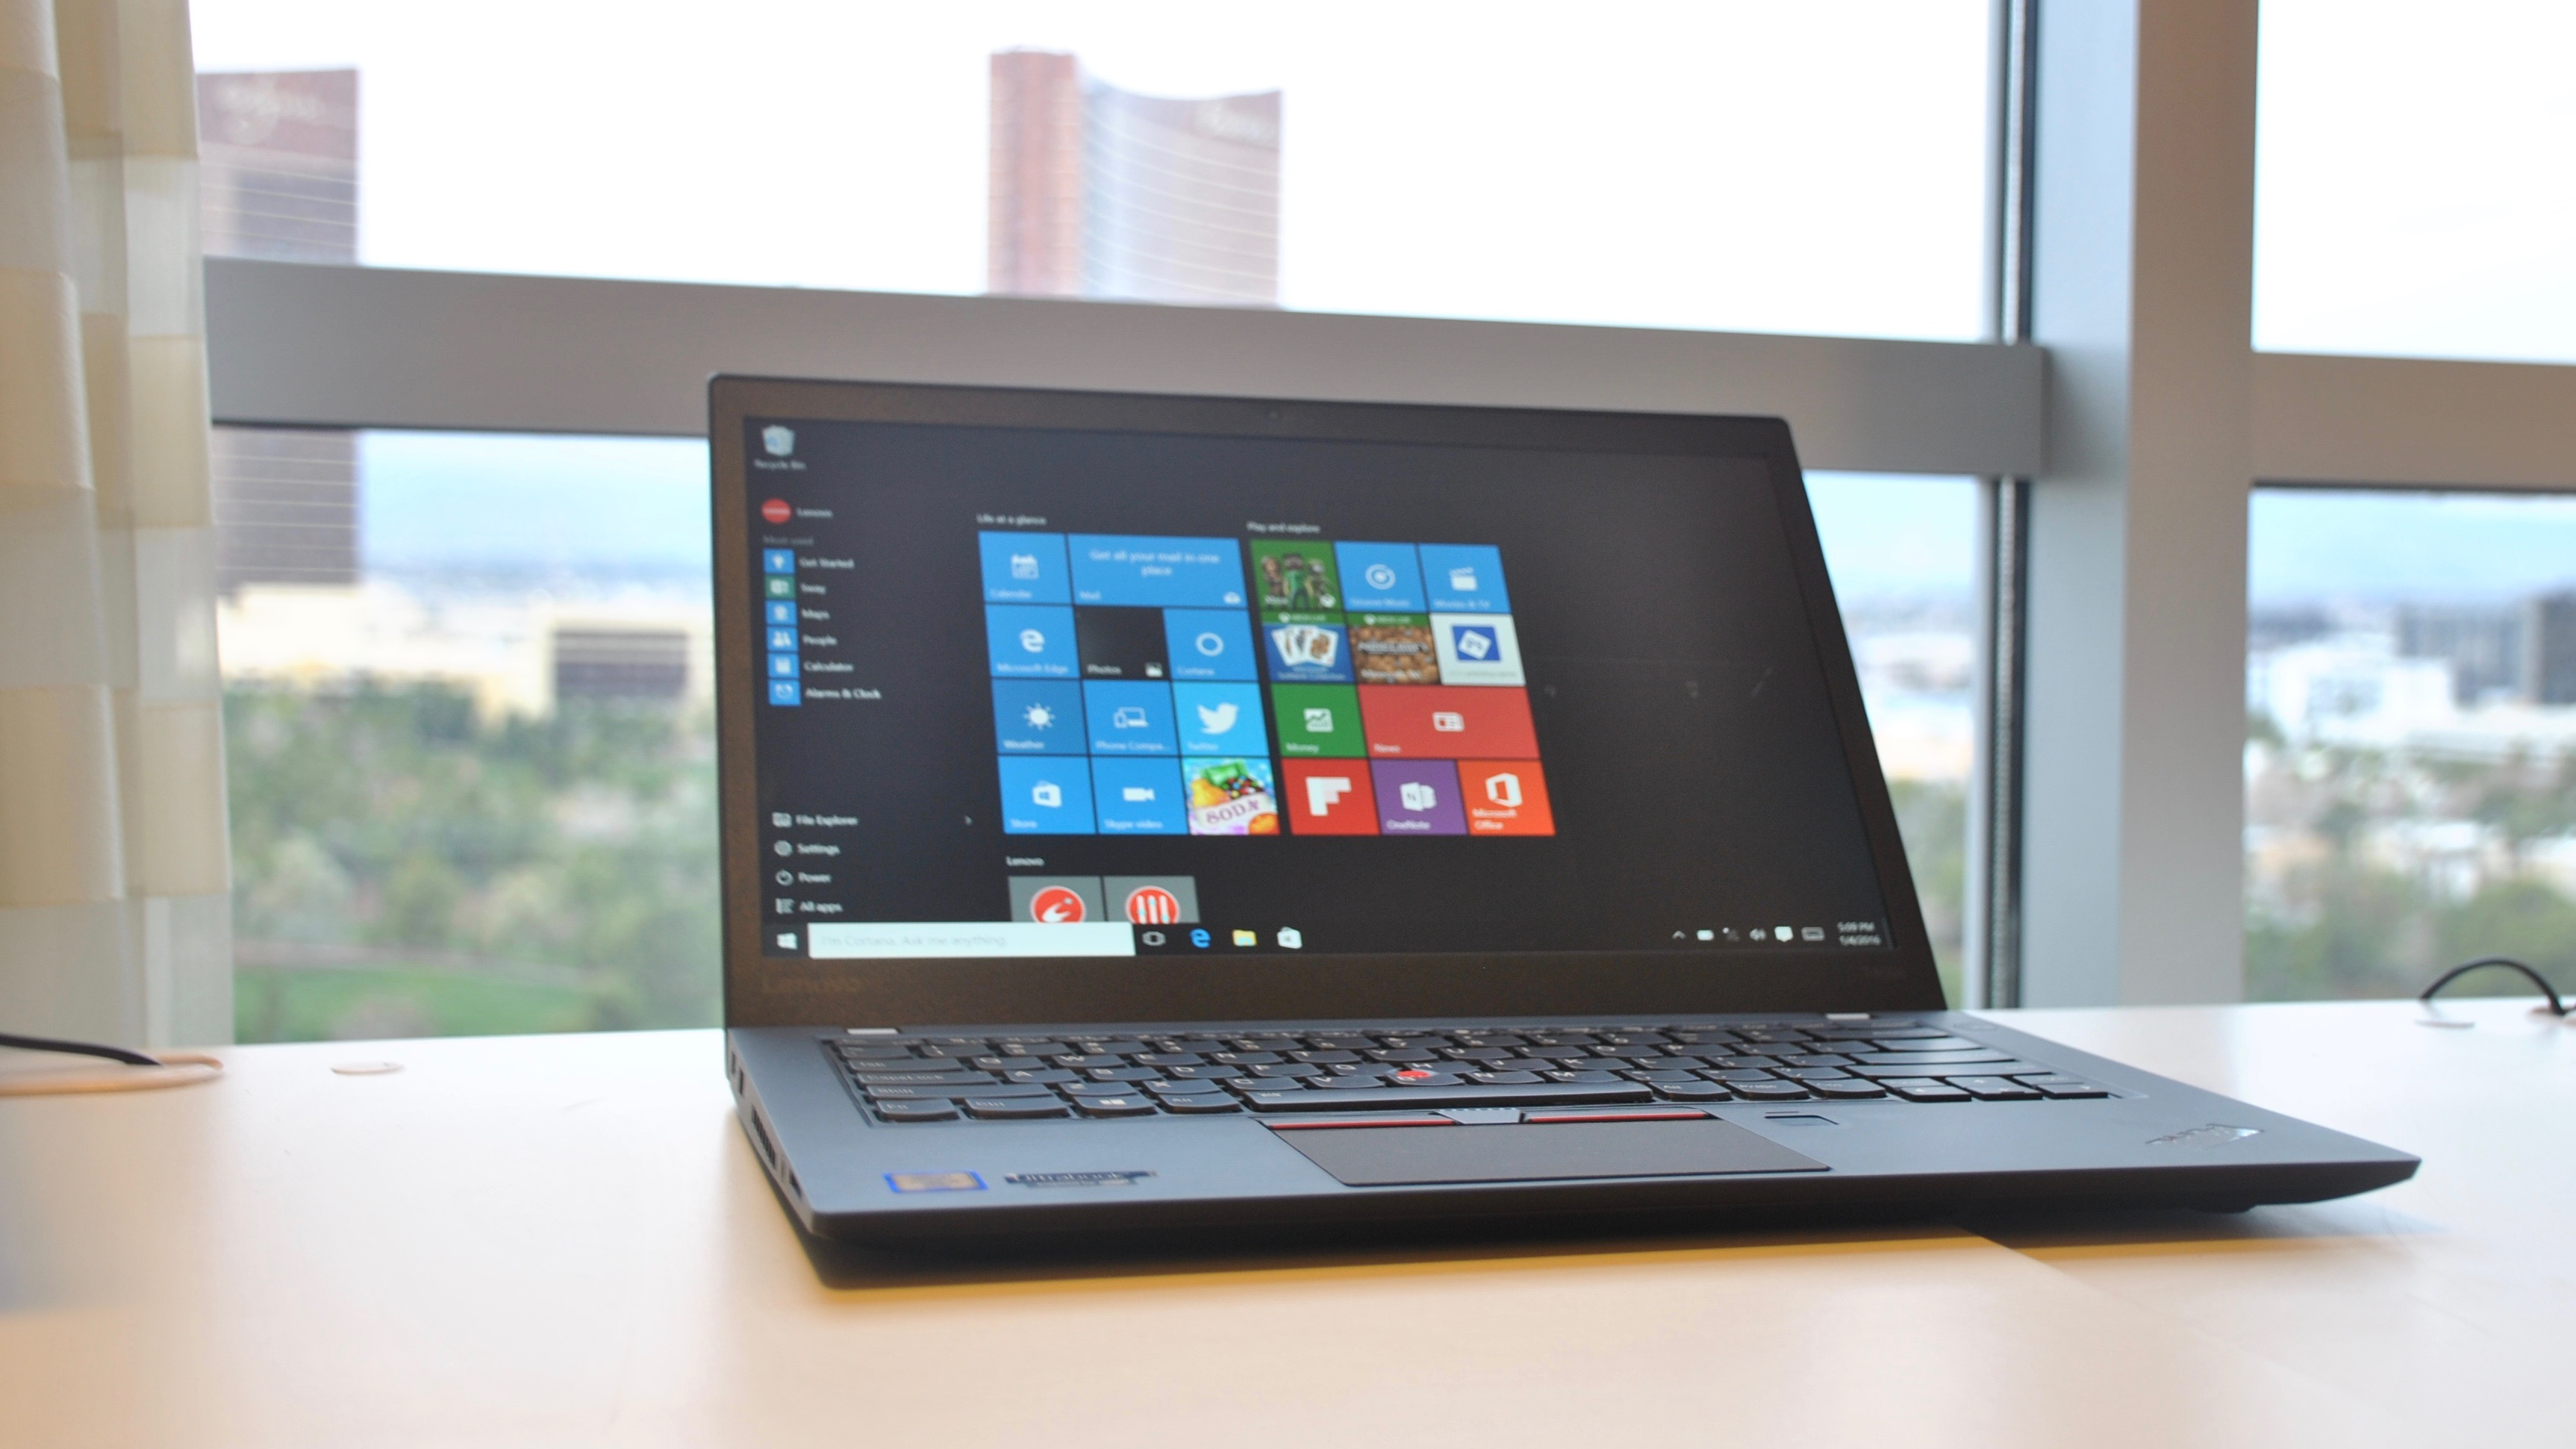 Hands on: Lenovo ThinkPad T460 review | TechRadar